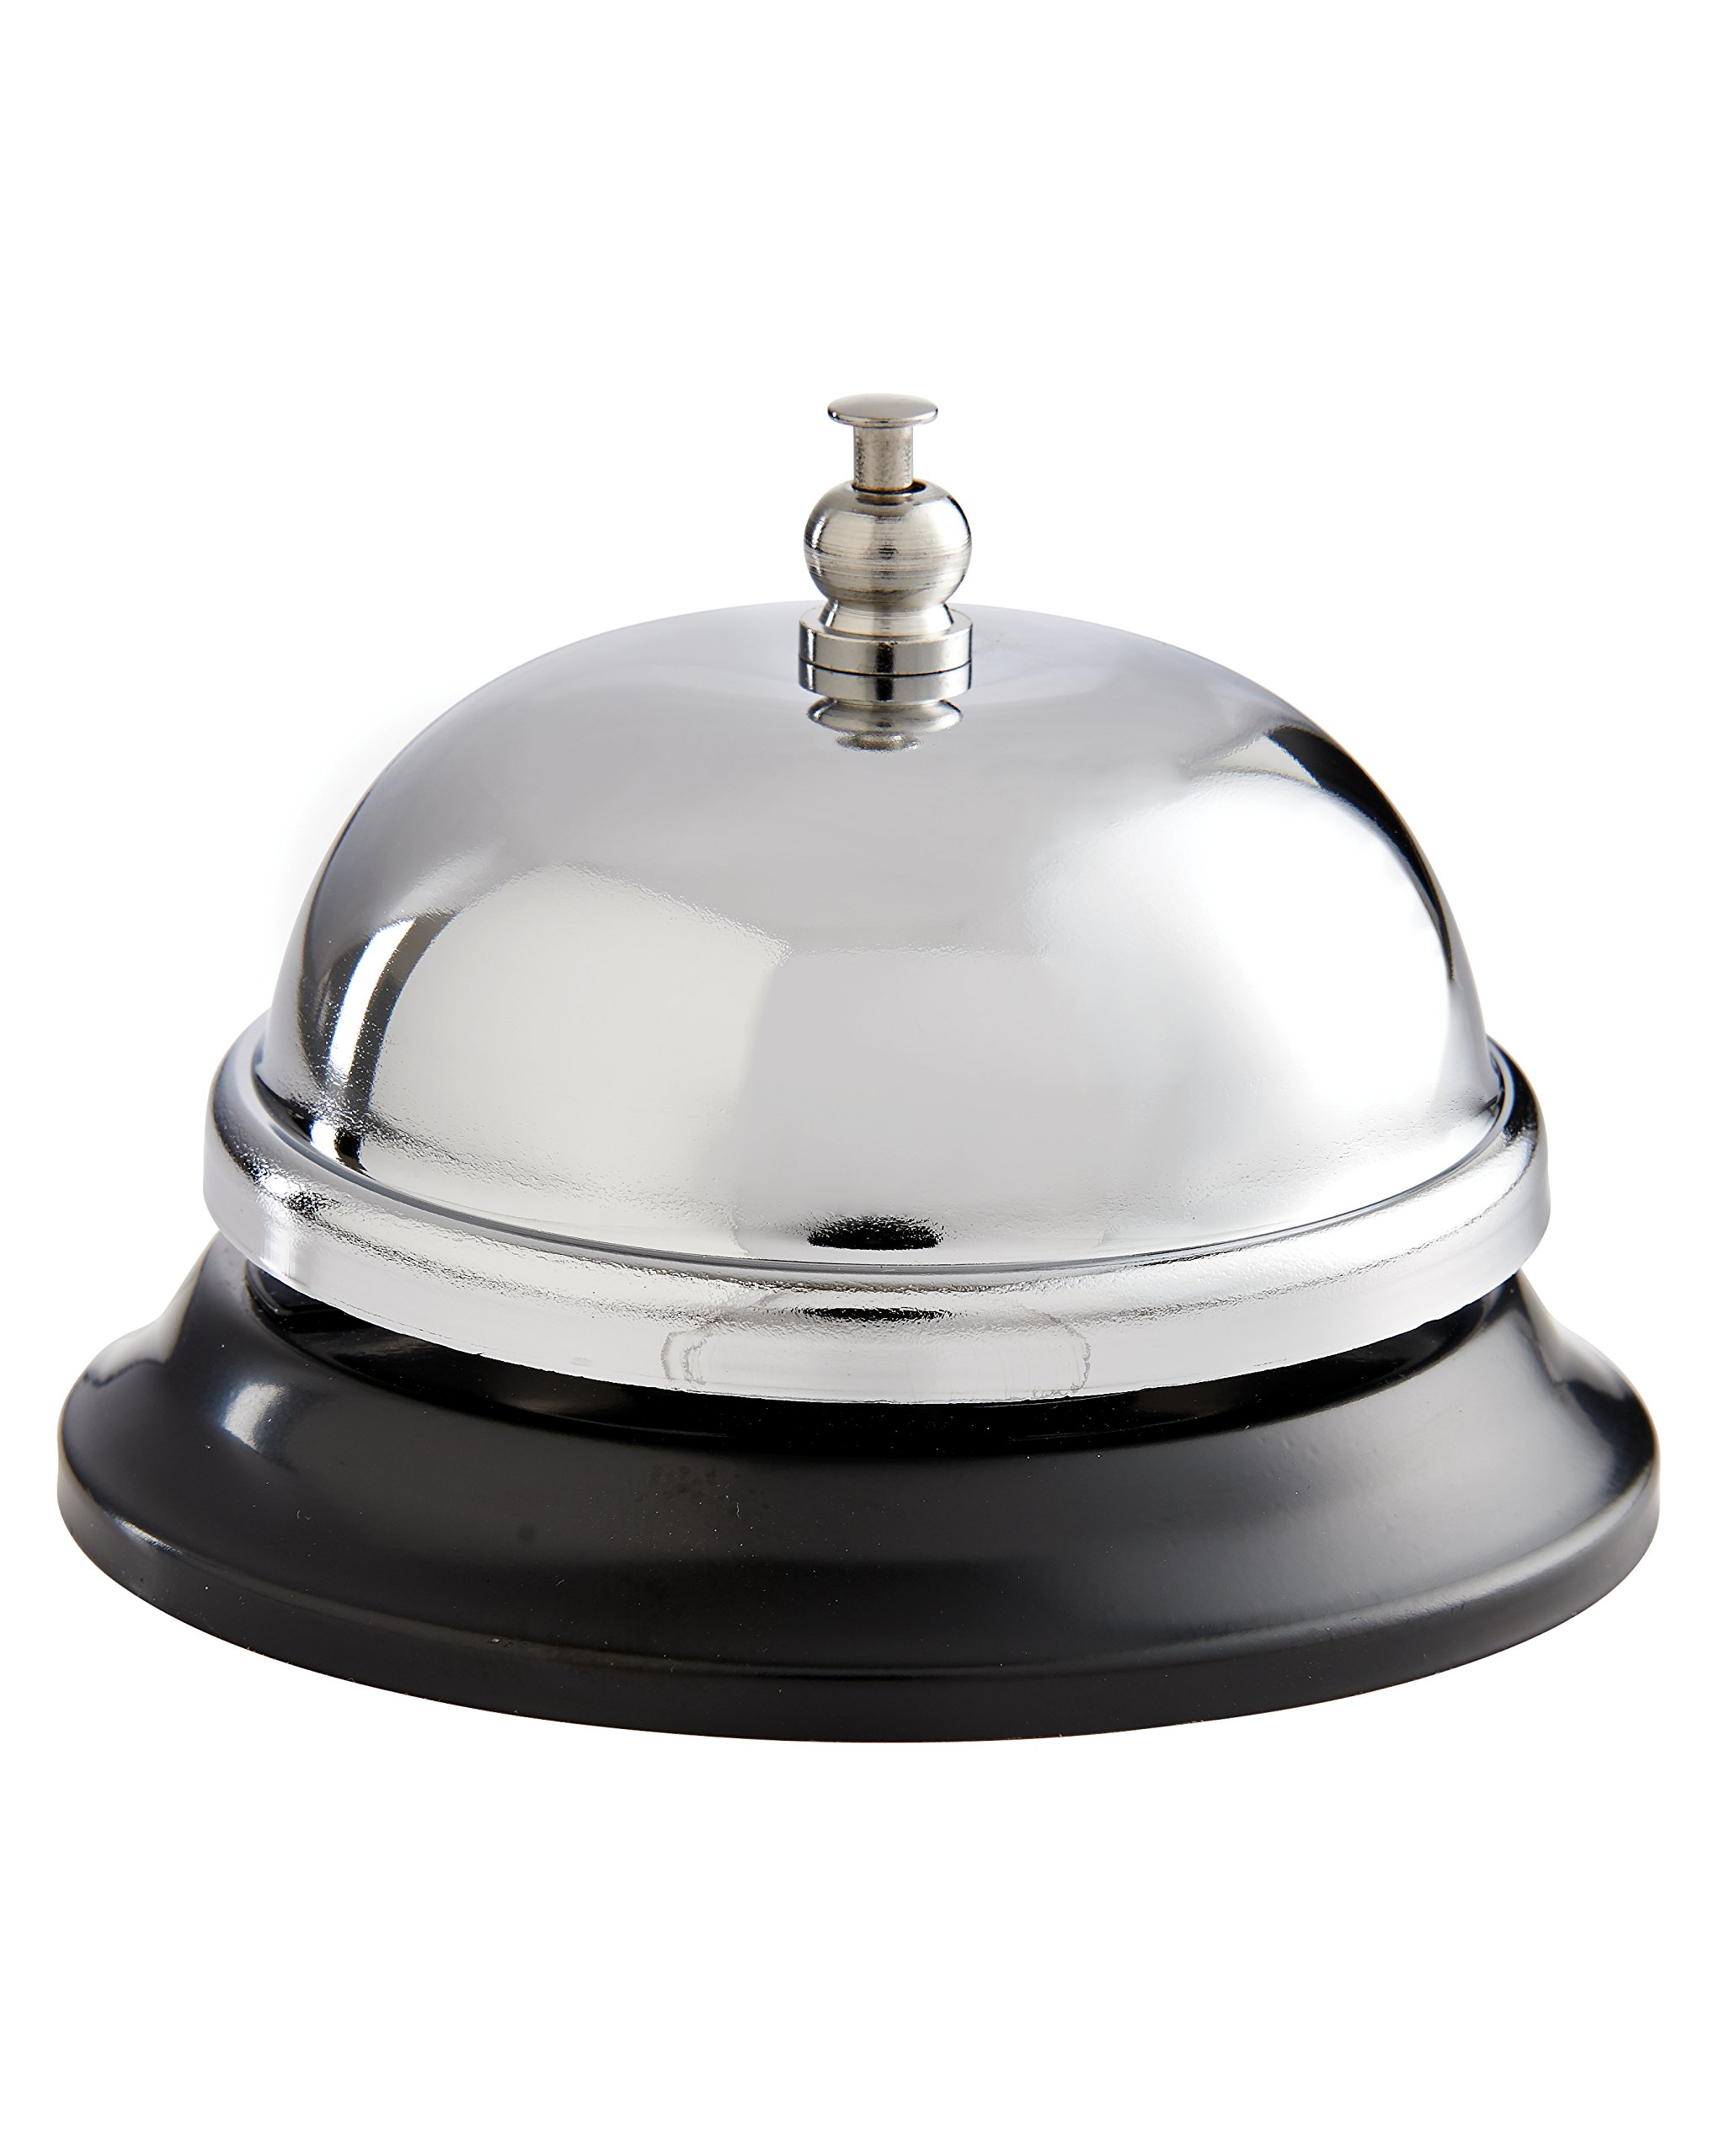 HIC Food Service Dinner Bell, 3.5-Inches x 2.5-Inches